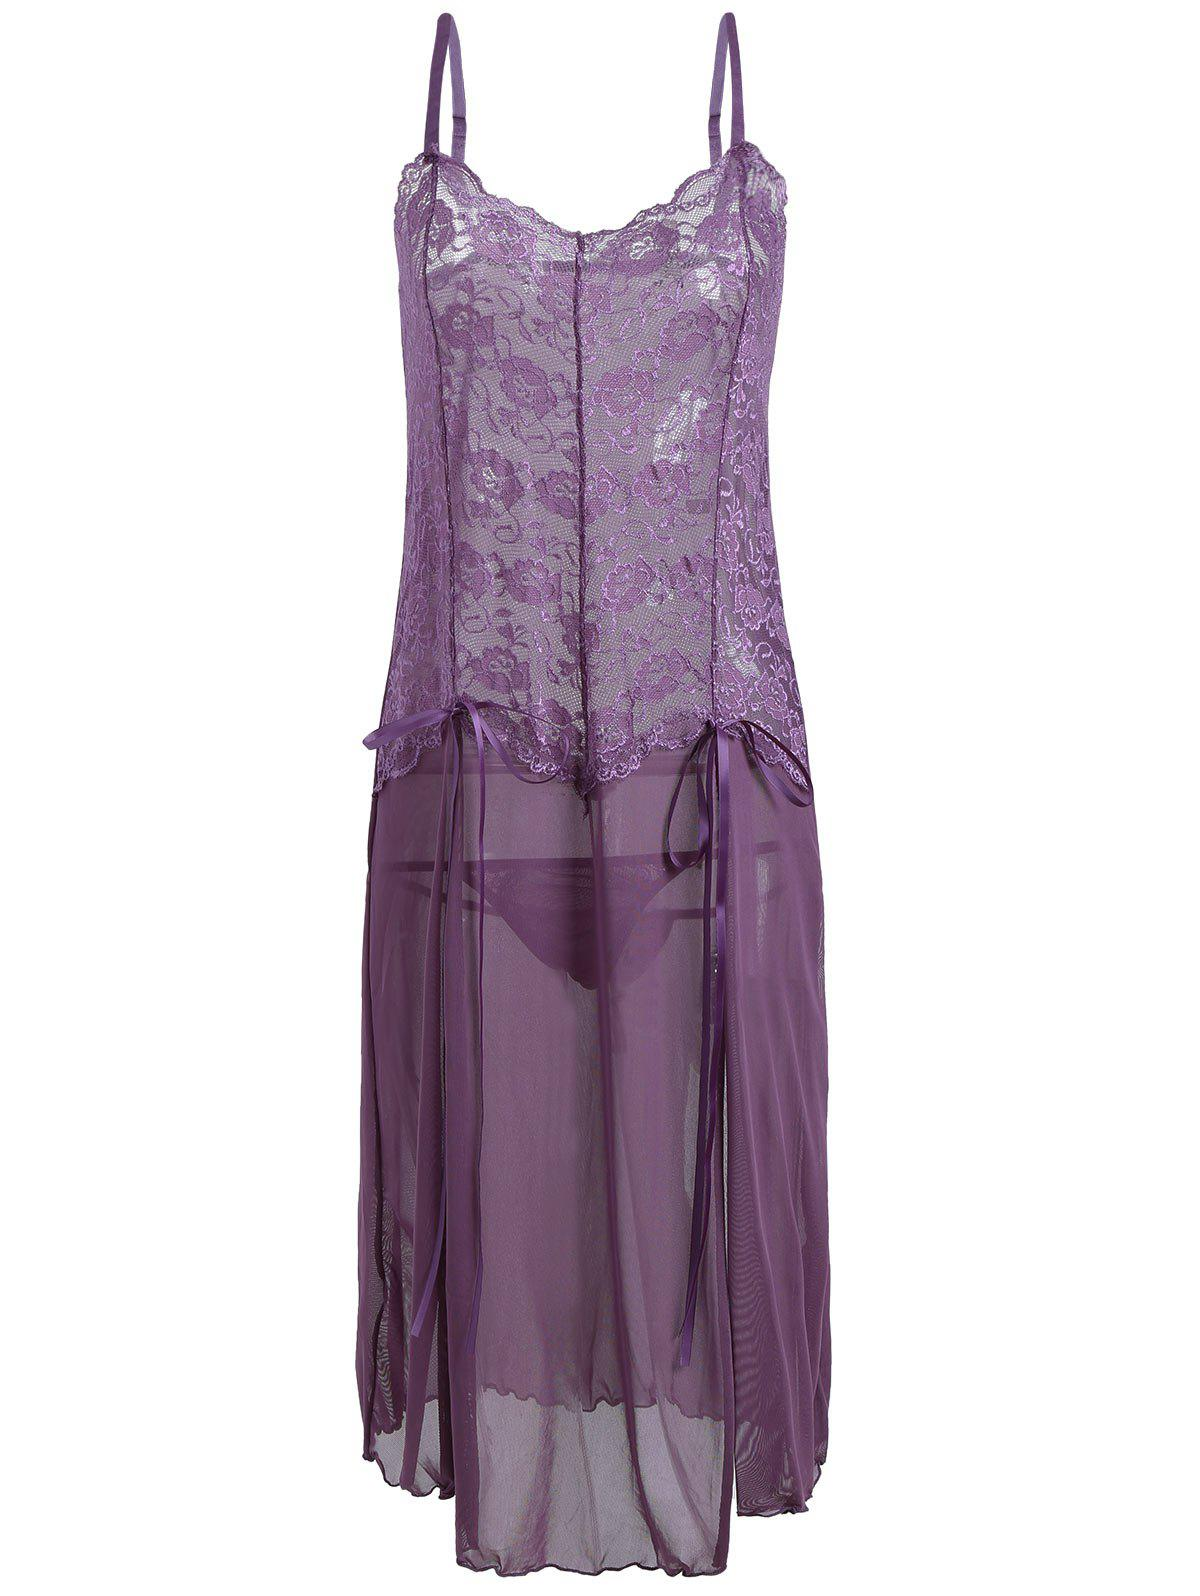 Voir à travers Mesh Cami Dress with Lace - Pourpre L